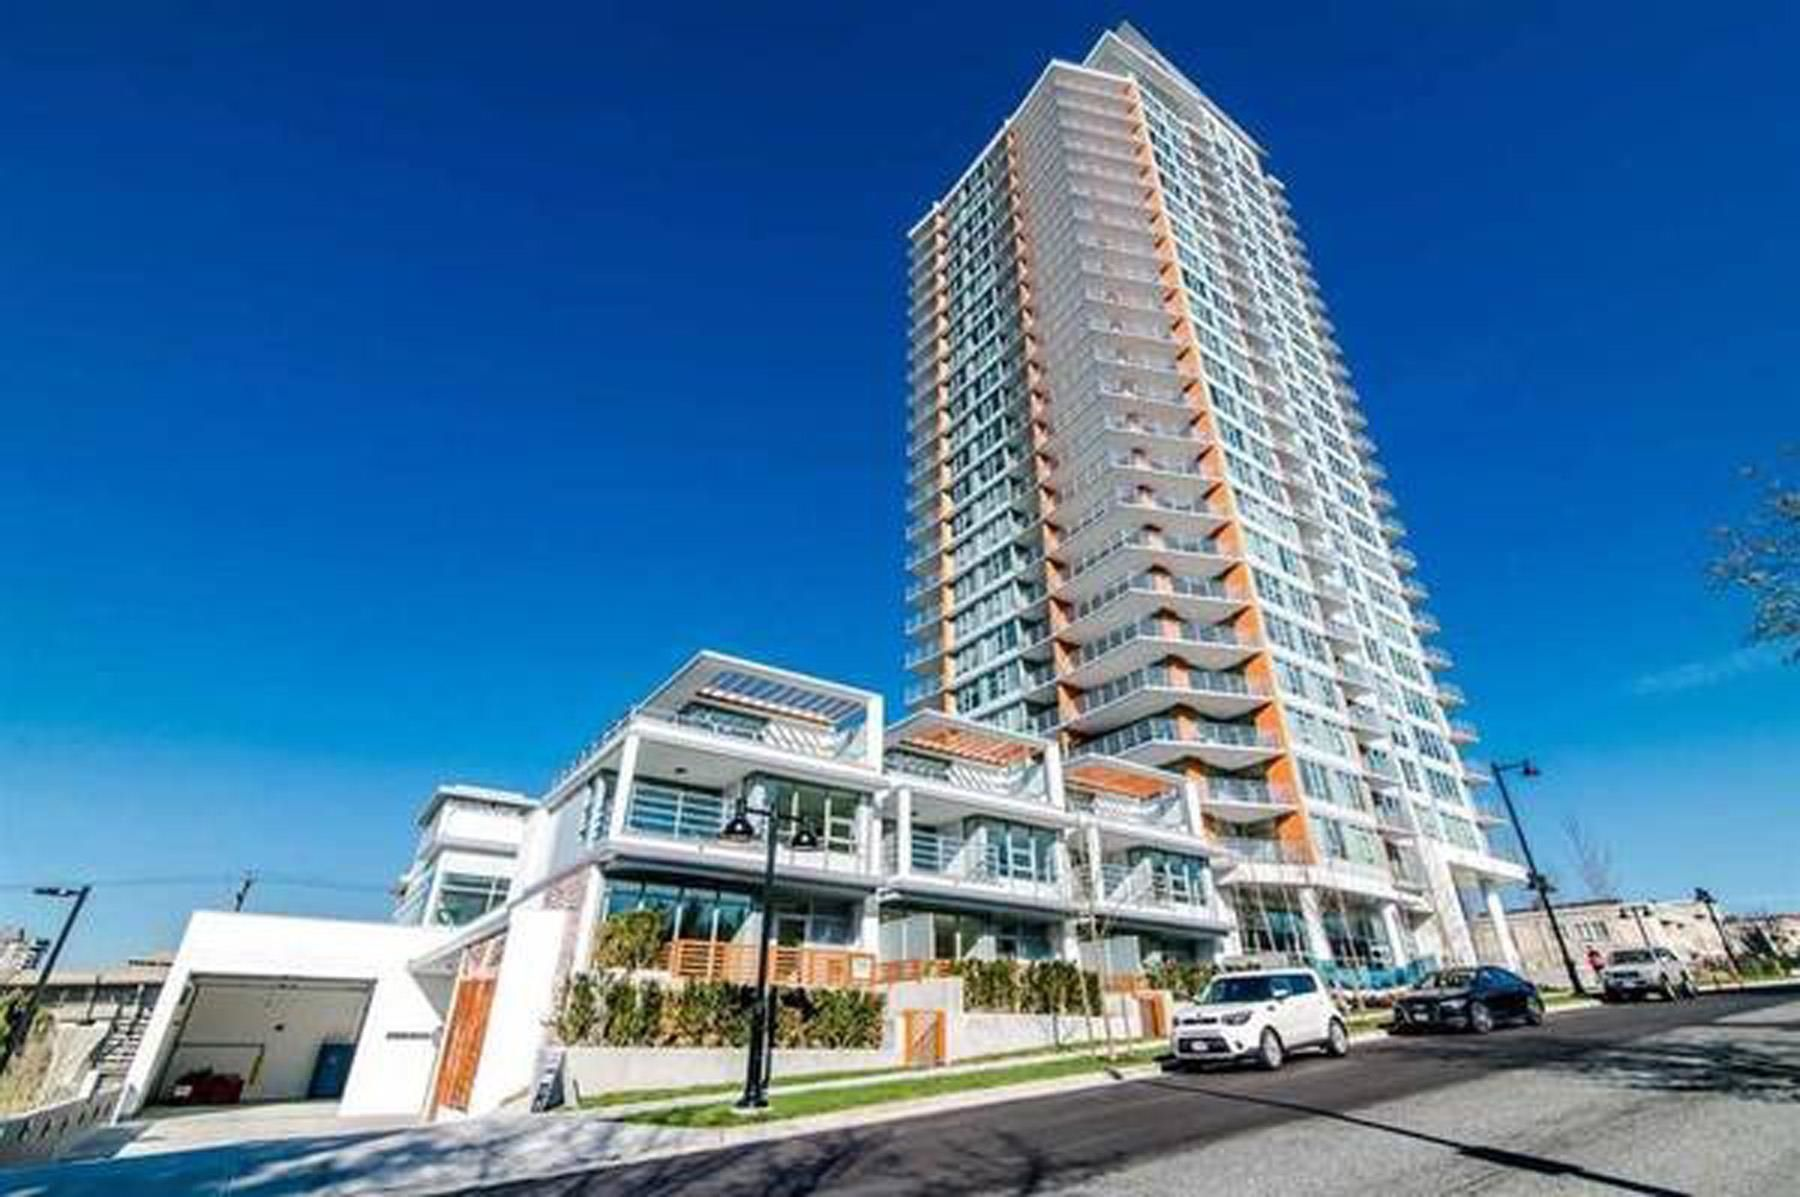 """Main Photo: 1703 530 WHITING Way in Coquitlam: Coquitlam West Condo for sale in """"Brookmere"""" : MLS®# R2624972"""